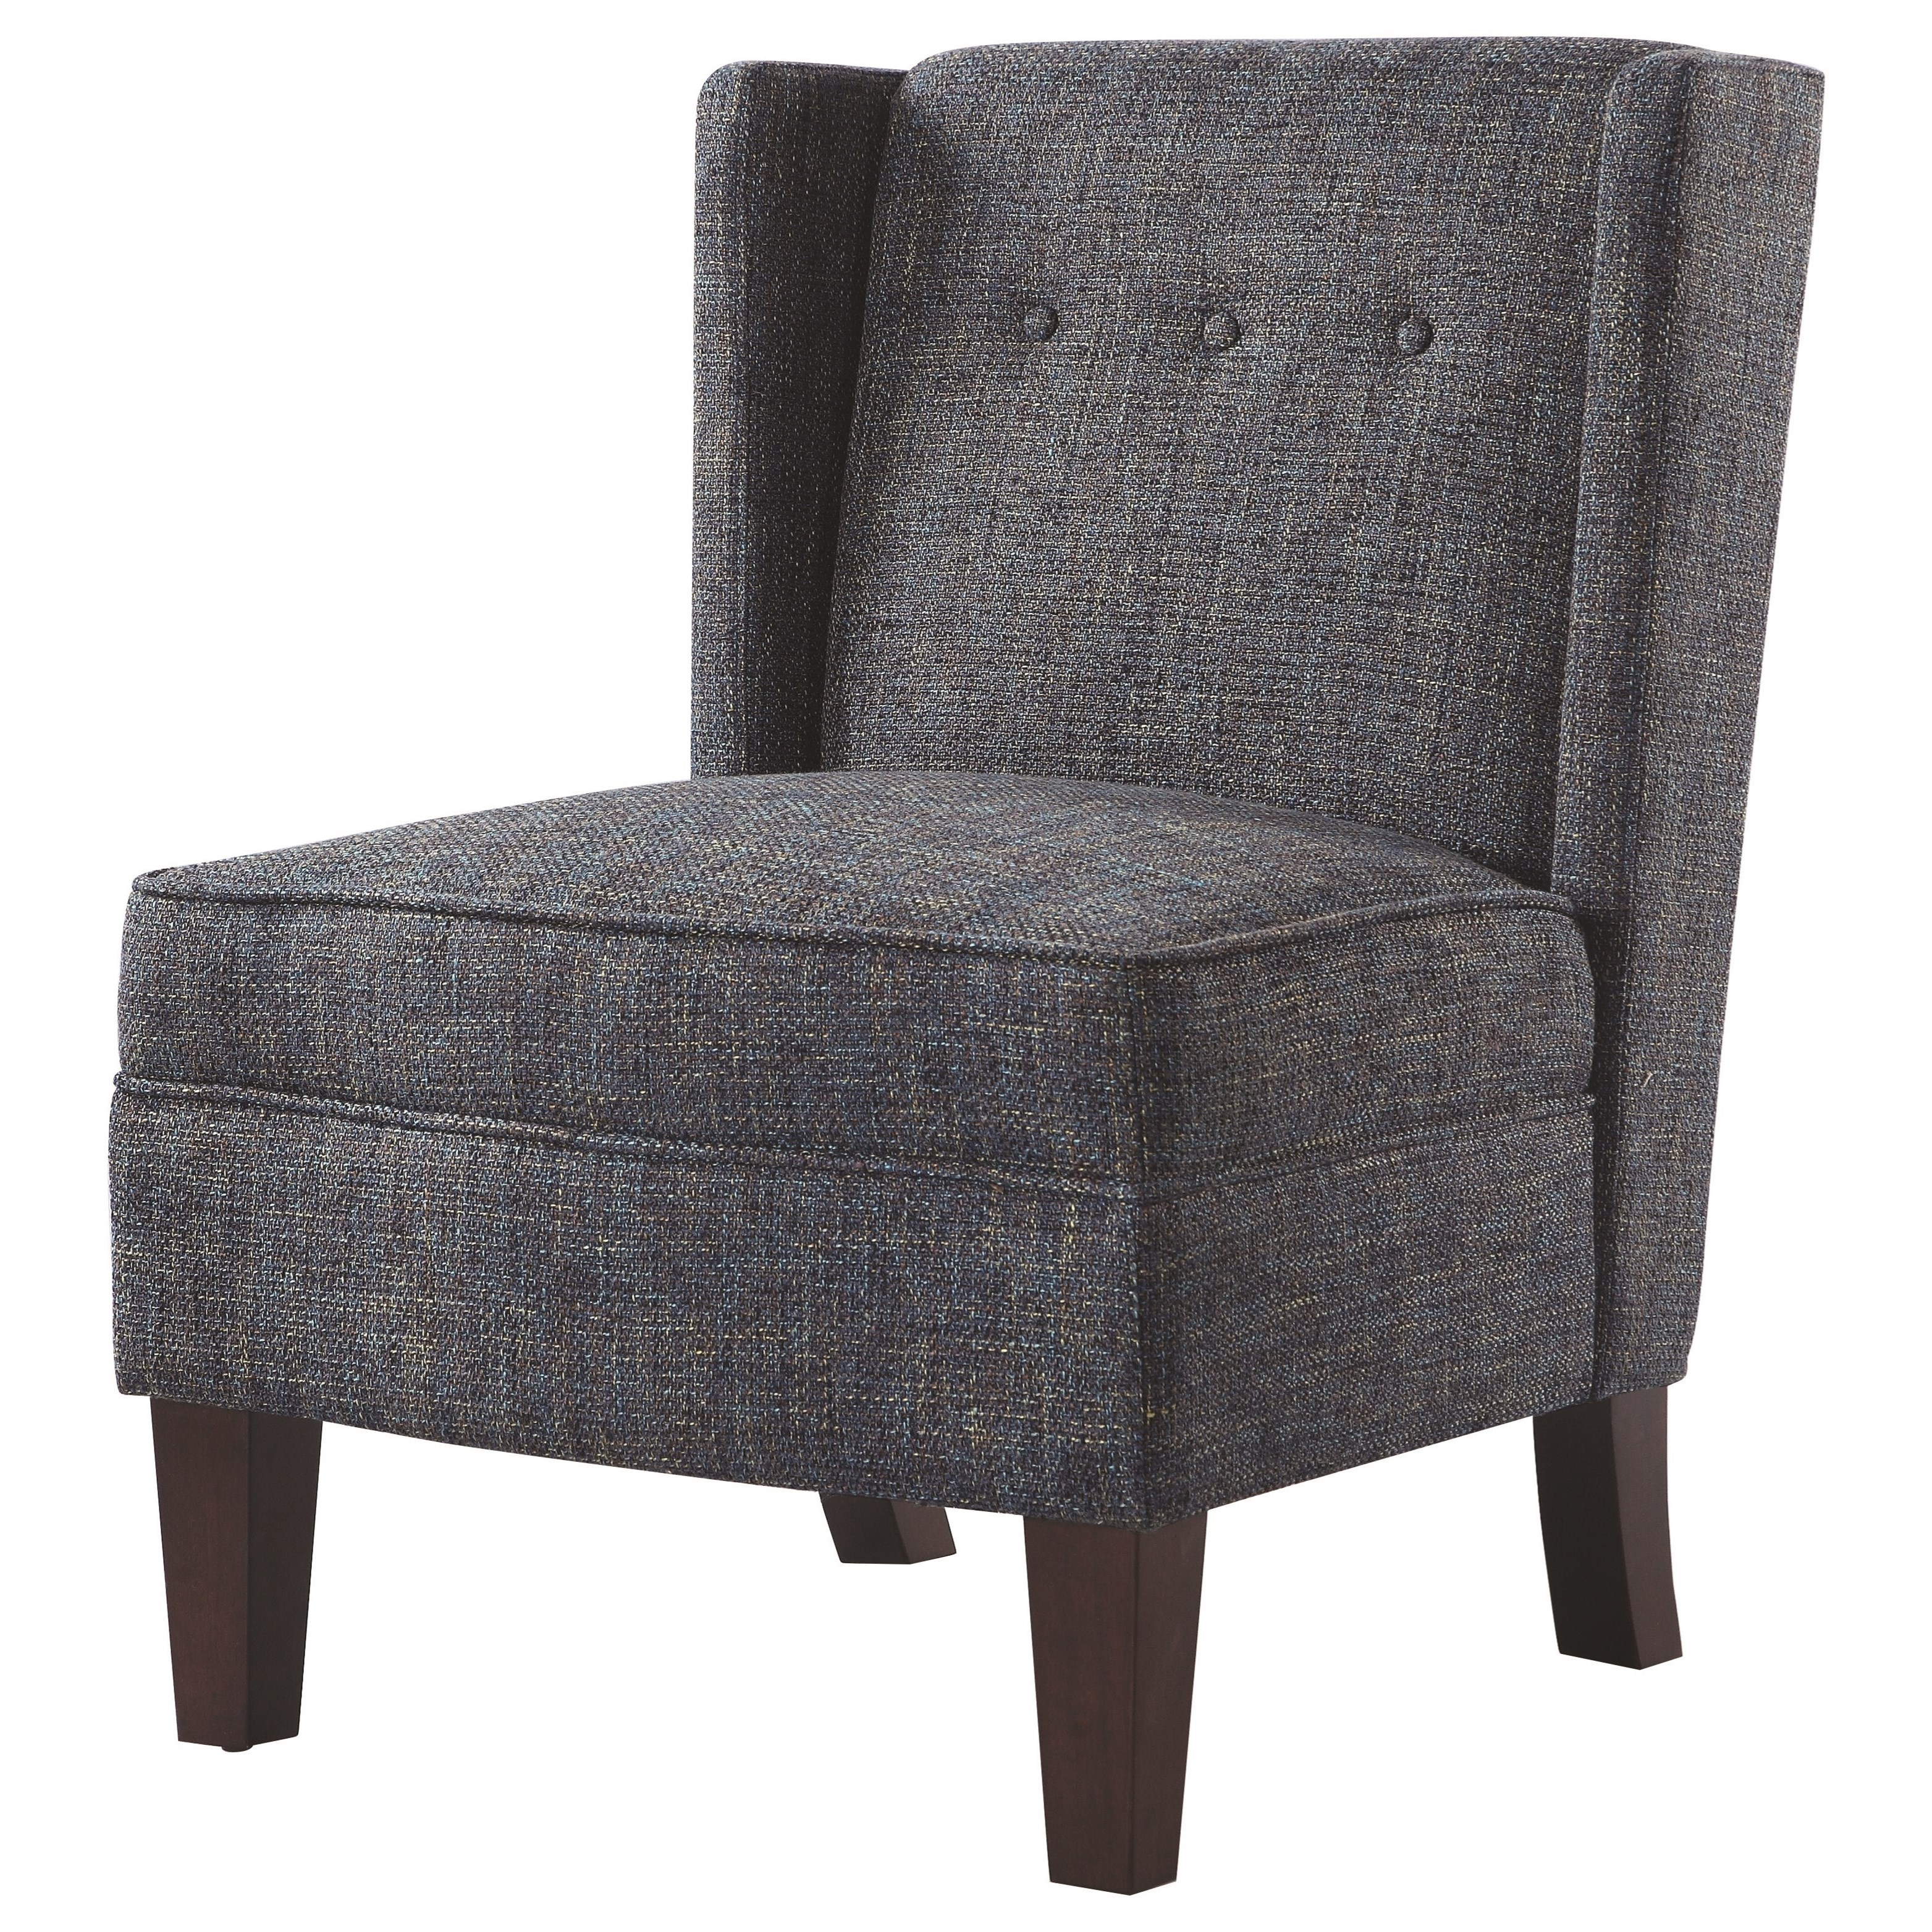 Scott Living Accents Accent Chair - Item Number: 903369